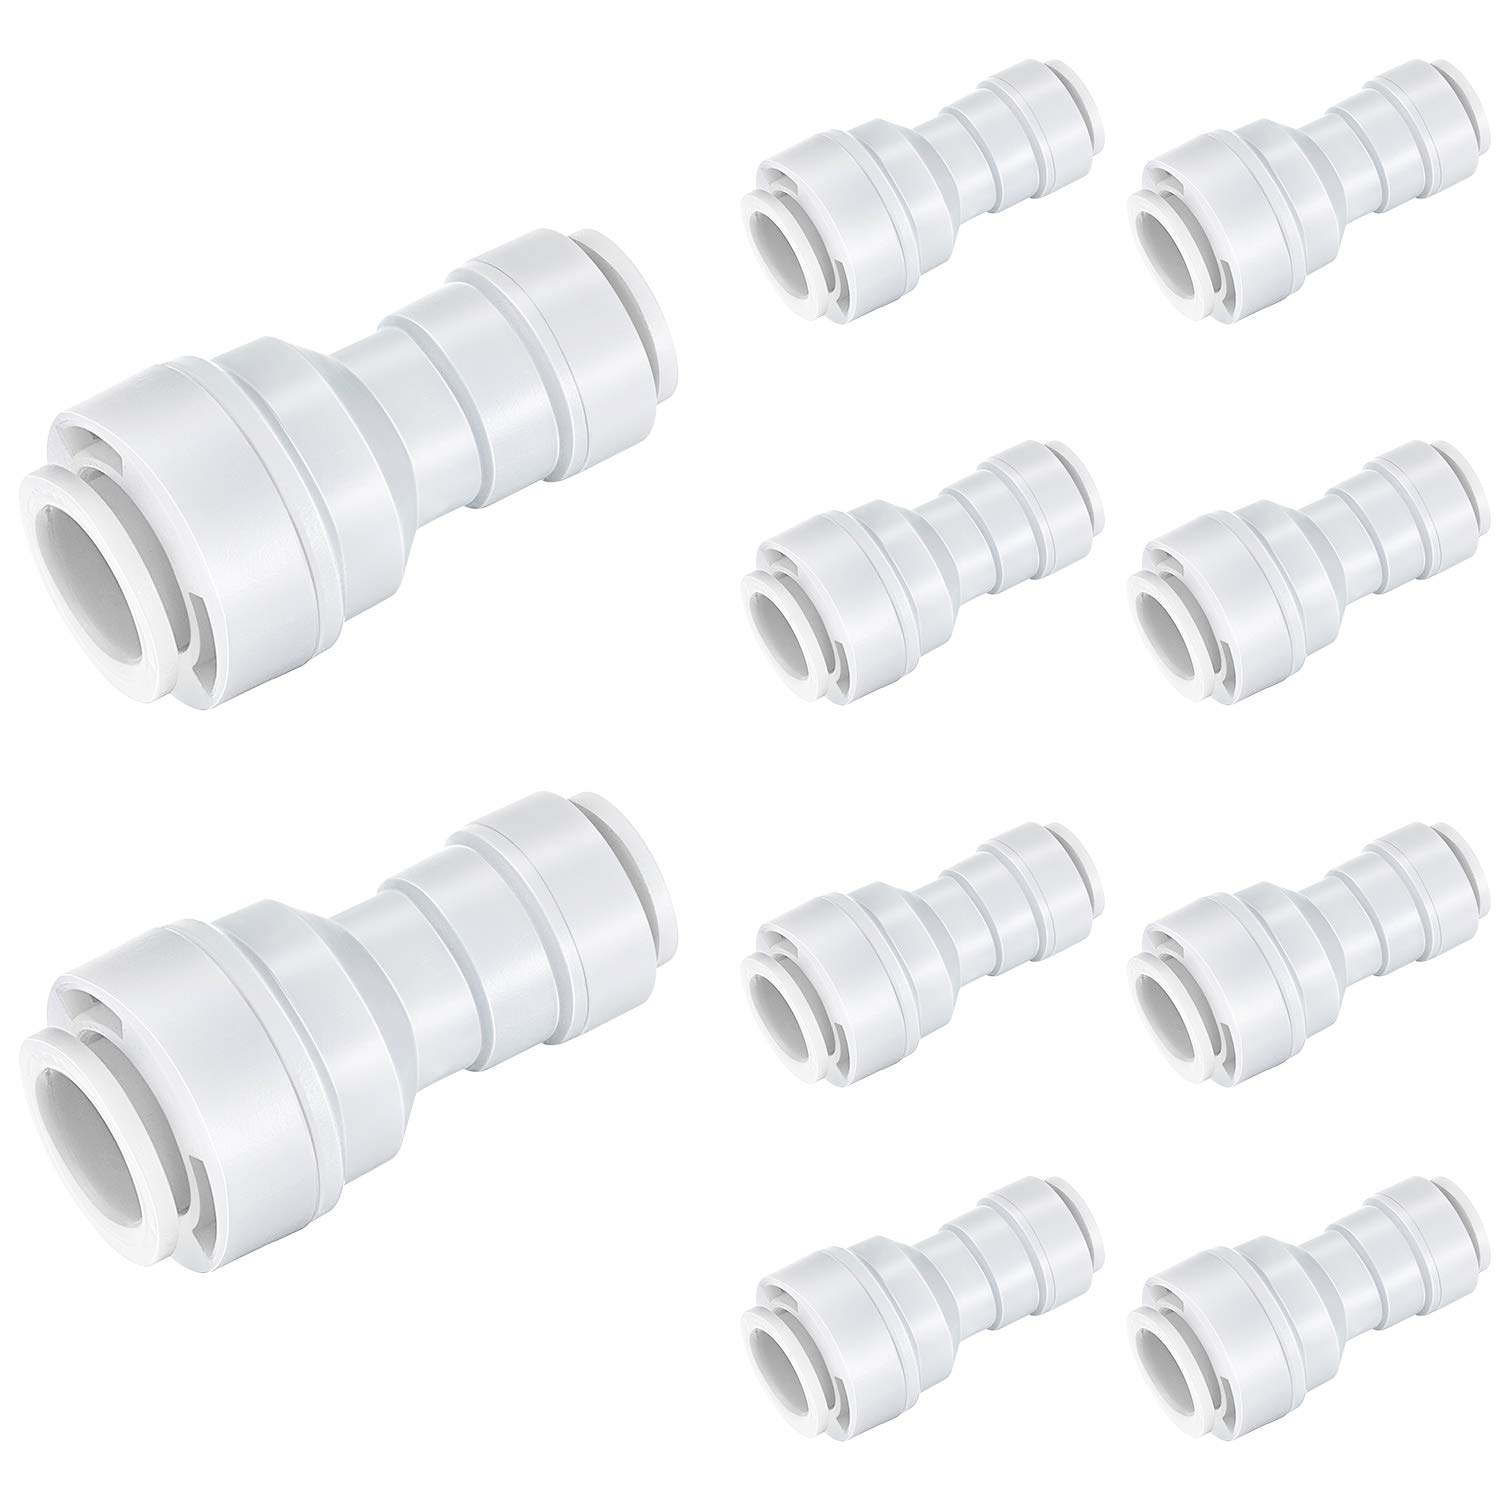 20 Pieces Quick Push to Connector Water Tube Fitting 1//4 Inch Tube OD x 3//8 Inch OD Reducing Straight Union Quick Release Pneumatic Connectors Air Line Fittings for Water Systems